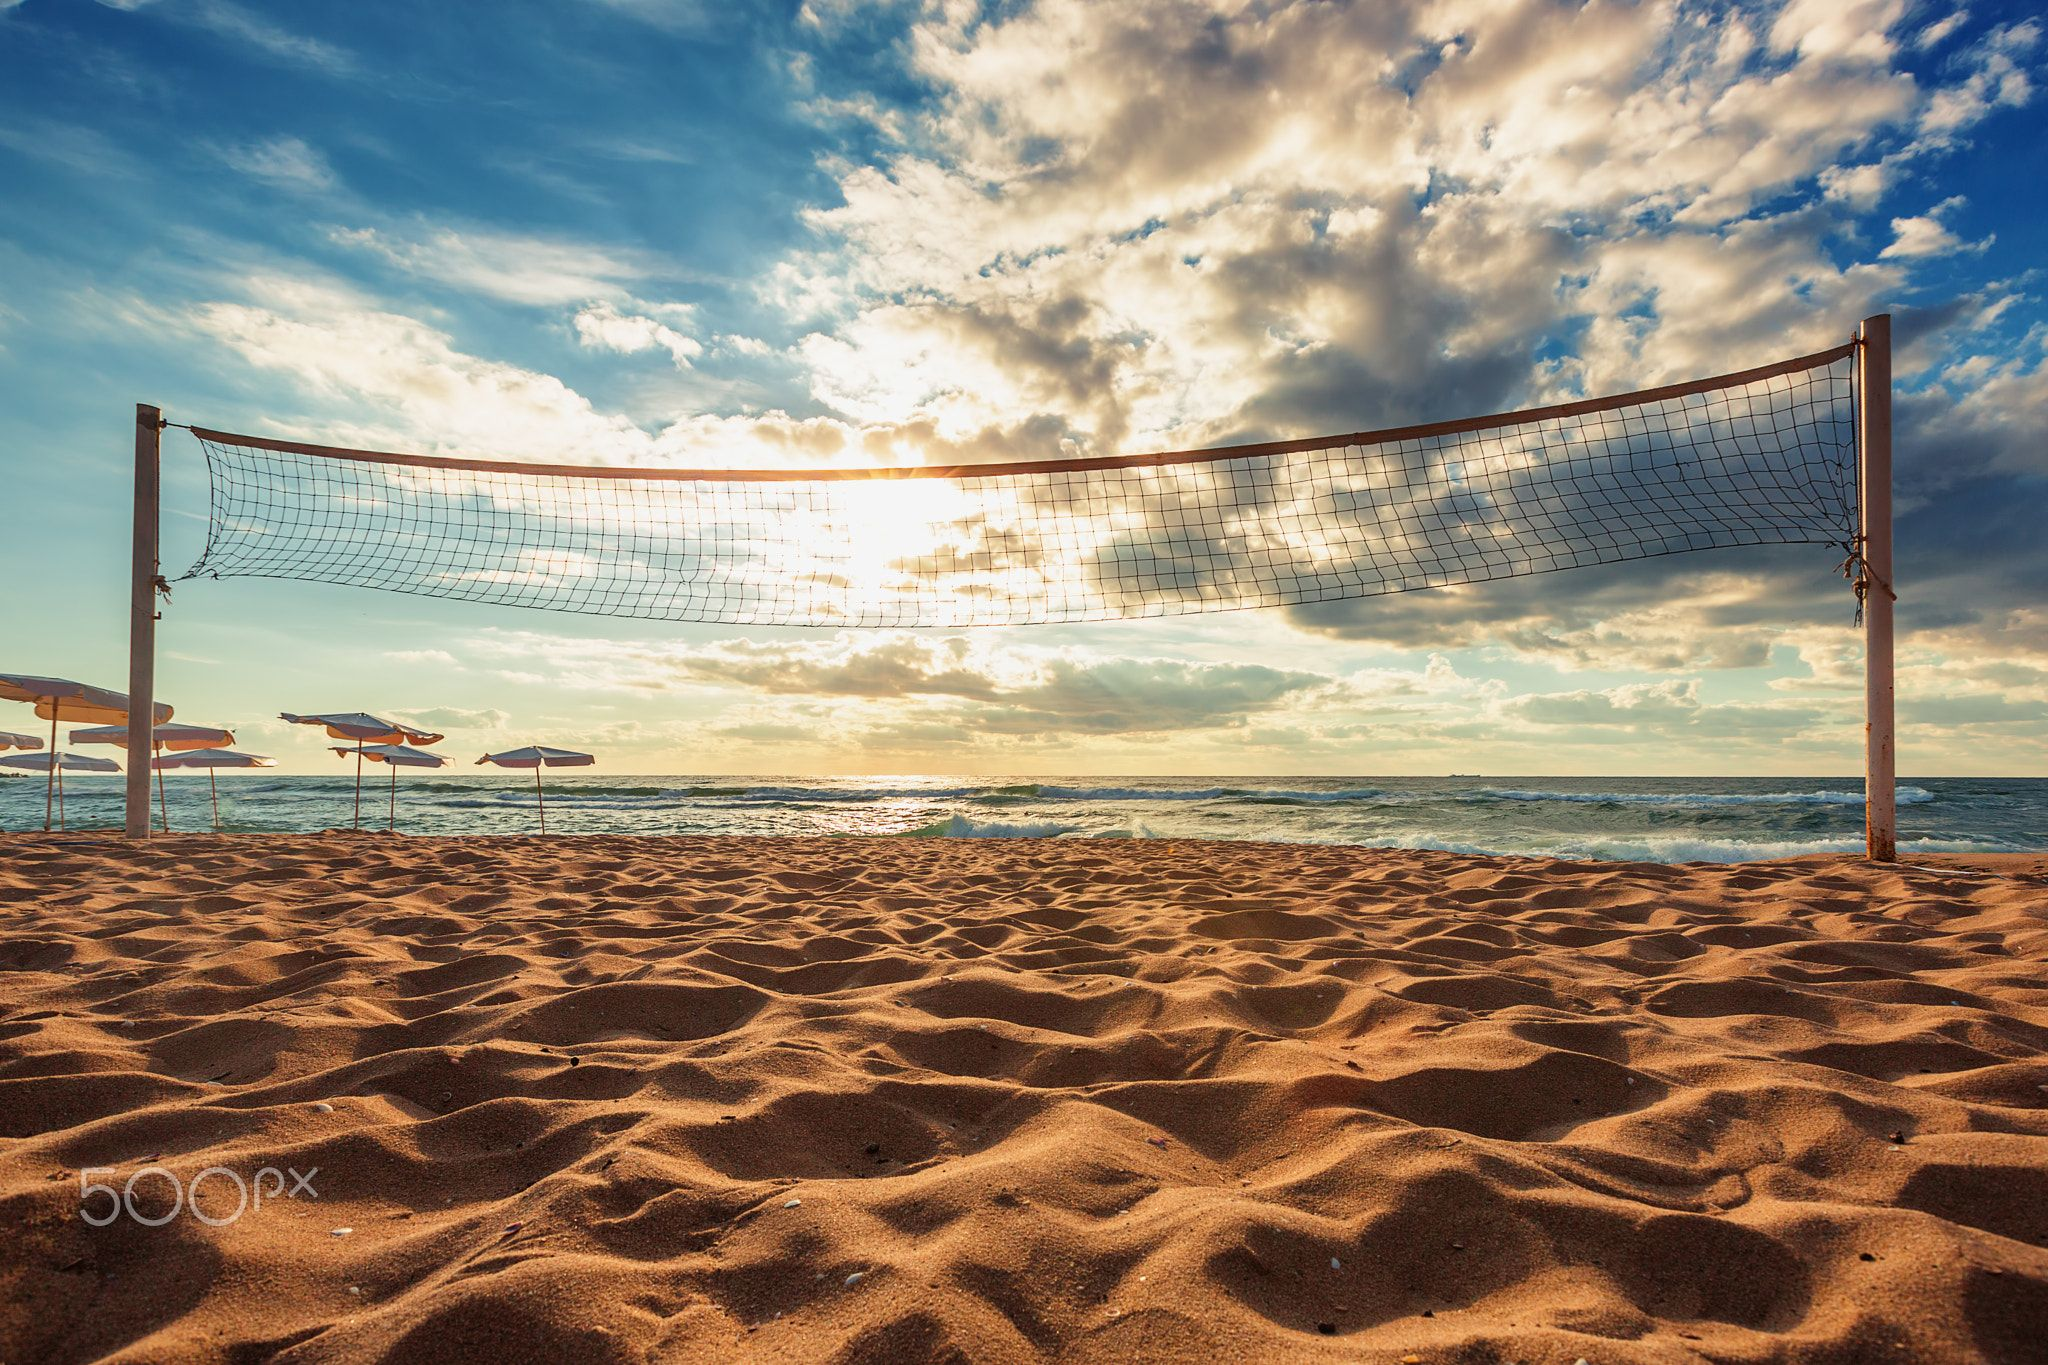 Volleyball Net And Sunrise On The Beach Volleyball Net And Sunrise On The Beach Beach Volleyball Net Volleyball Volleyball Net